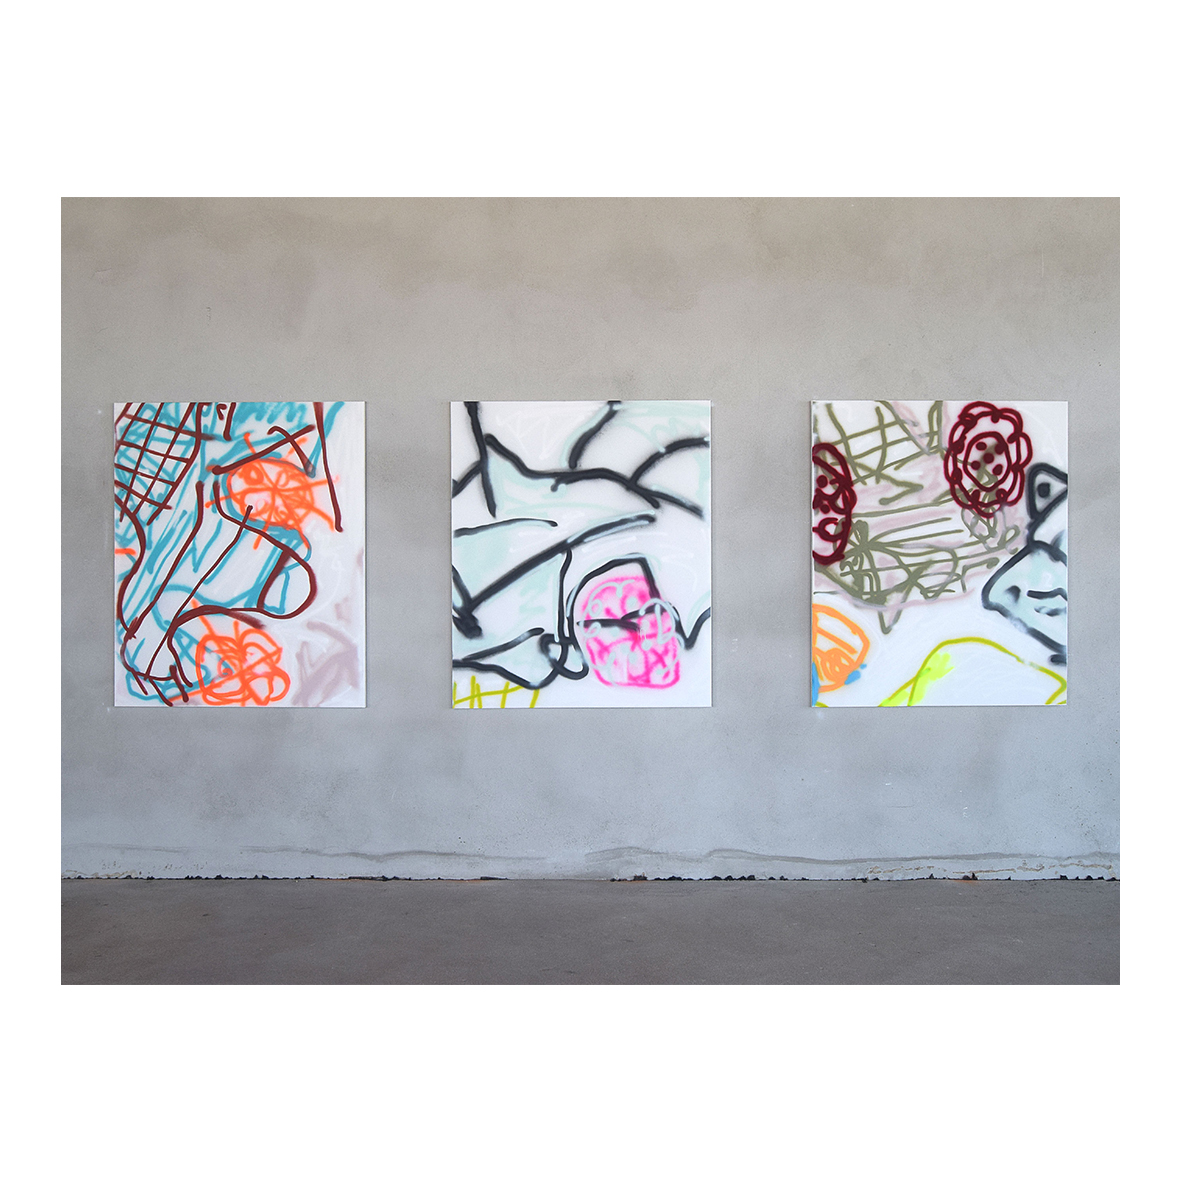 Thomas langley Arena Essex (2020) Spray paint on canvas 1, 2 and 3 of 7 135 x 115cm